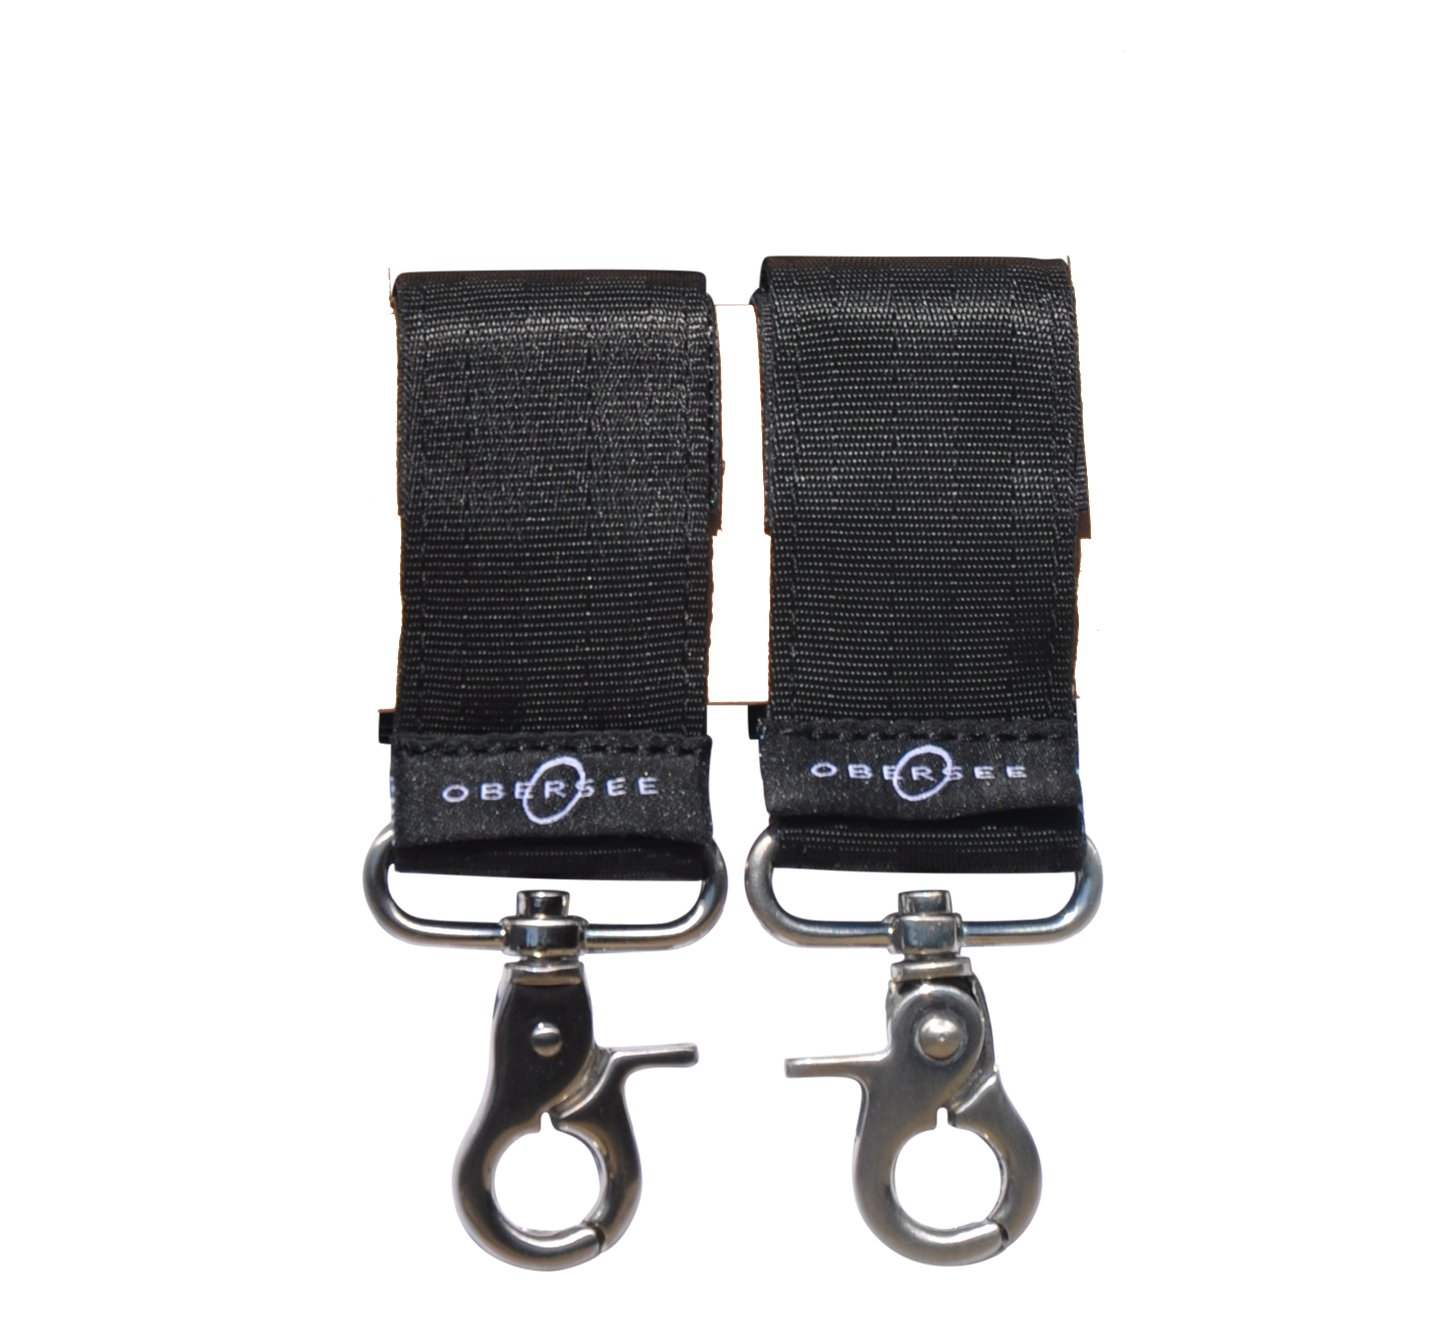 Obersee Universal Stroller Straps for Diaper Bags, Black O3SSTRAP001